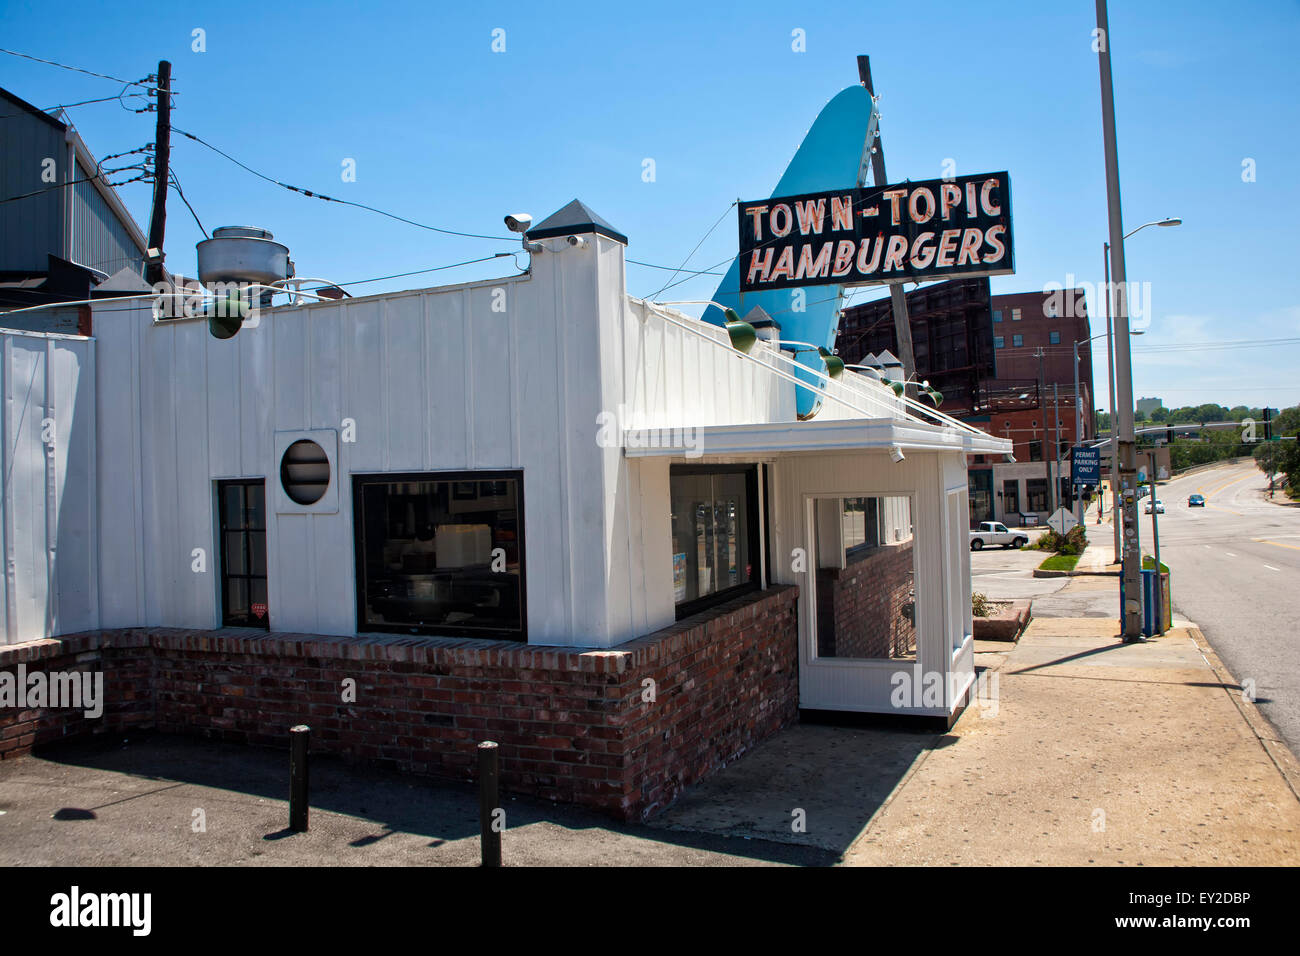 Town Topic Hamburgers Diner in Kansas City, Missouri - Stock Image